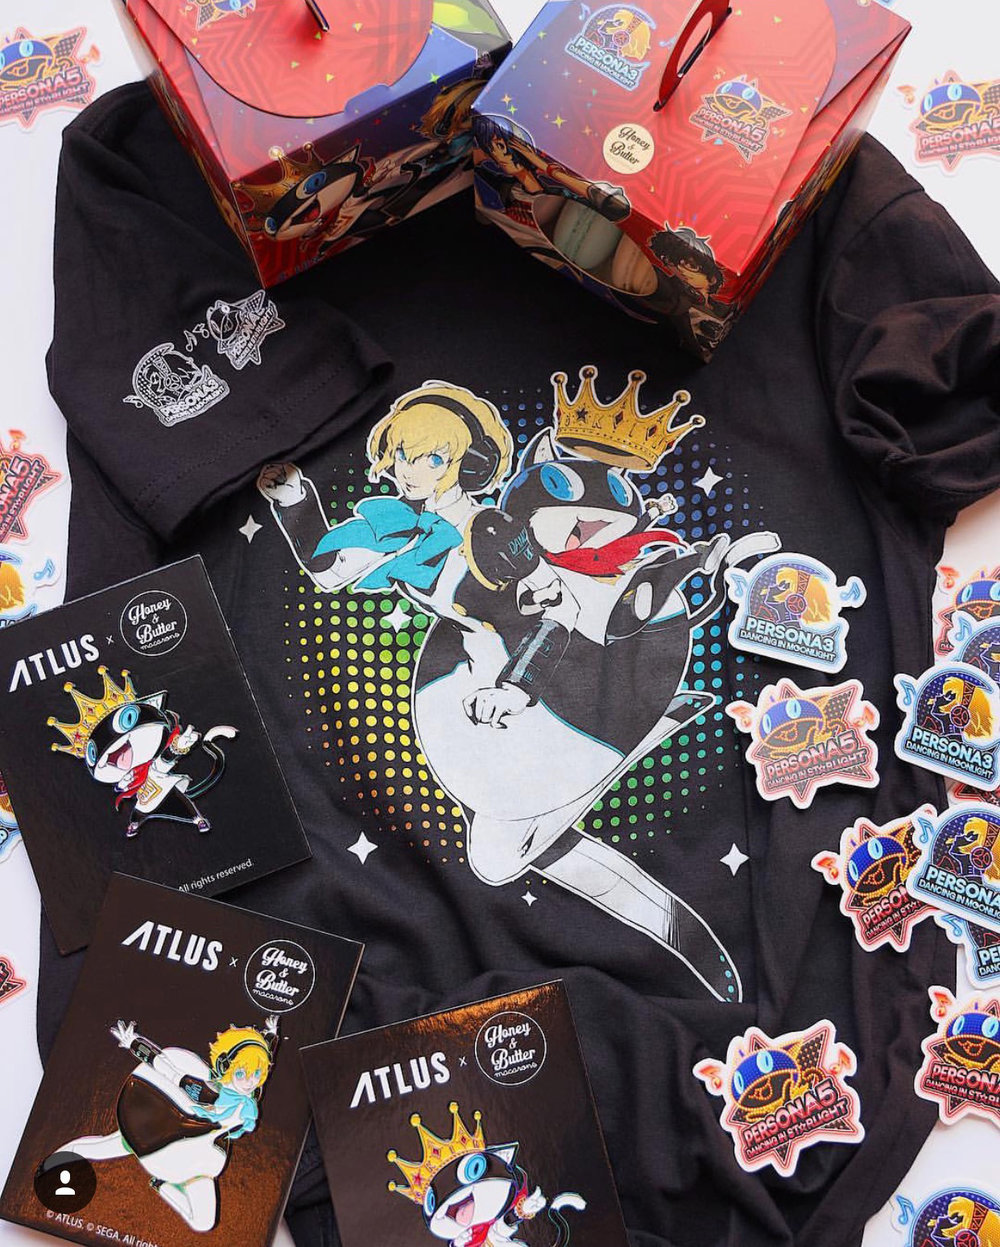 Atlus by Sega x Honey & Butter Pin + Packaging Design & Production Management